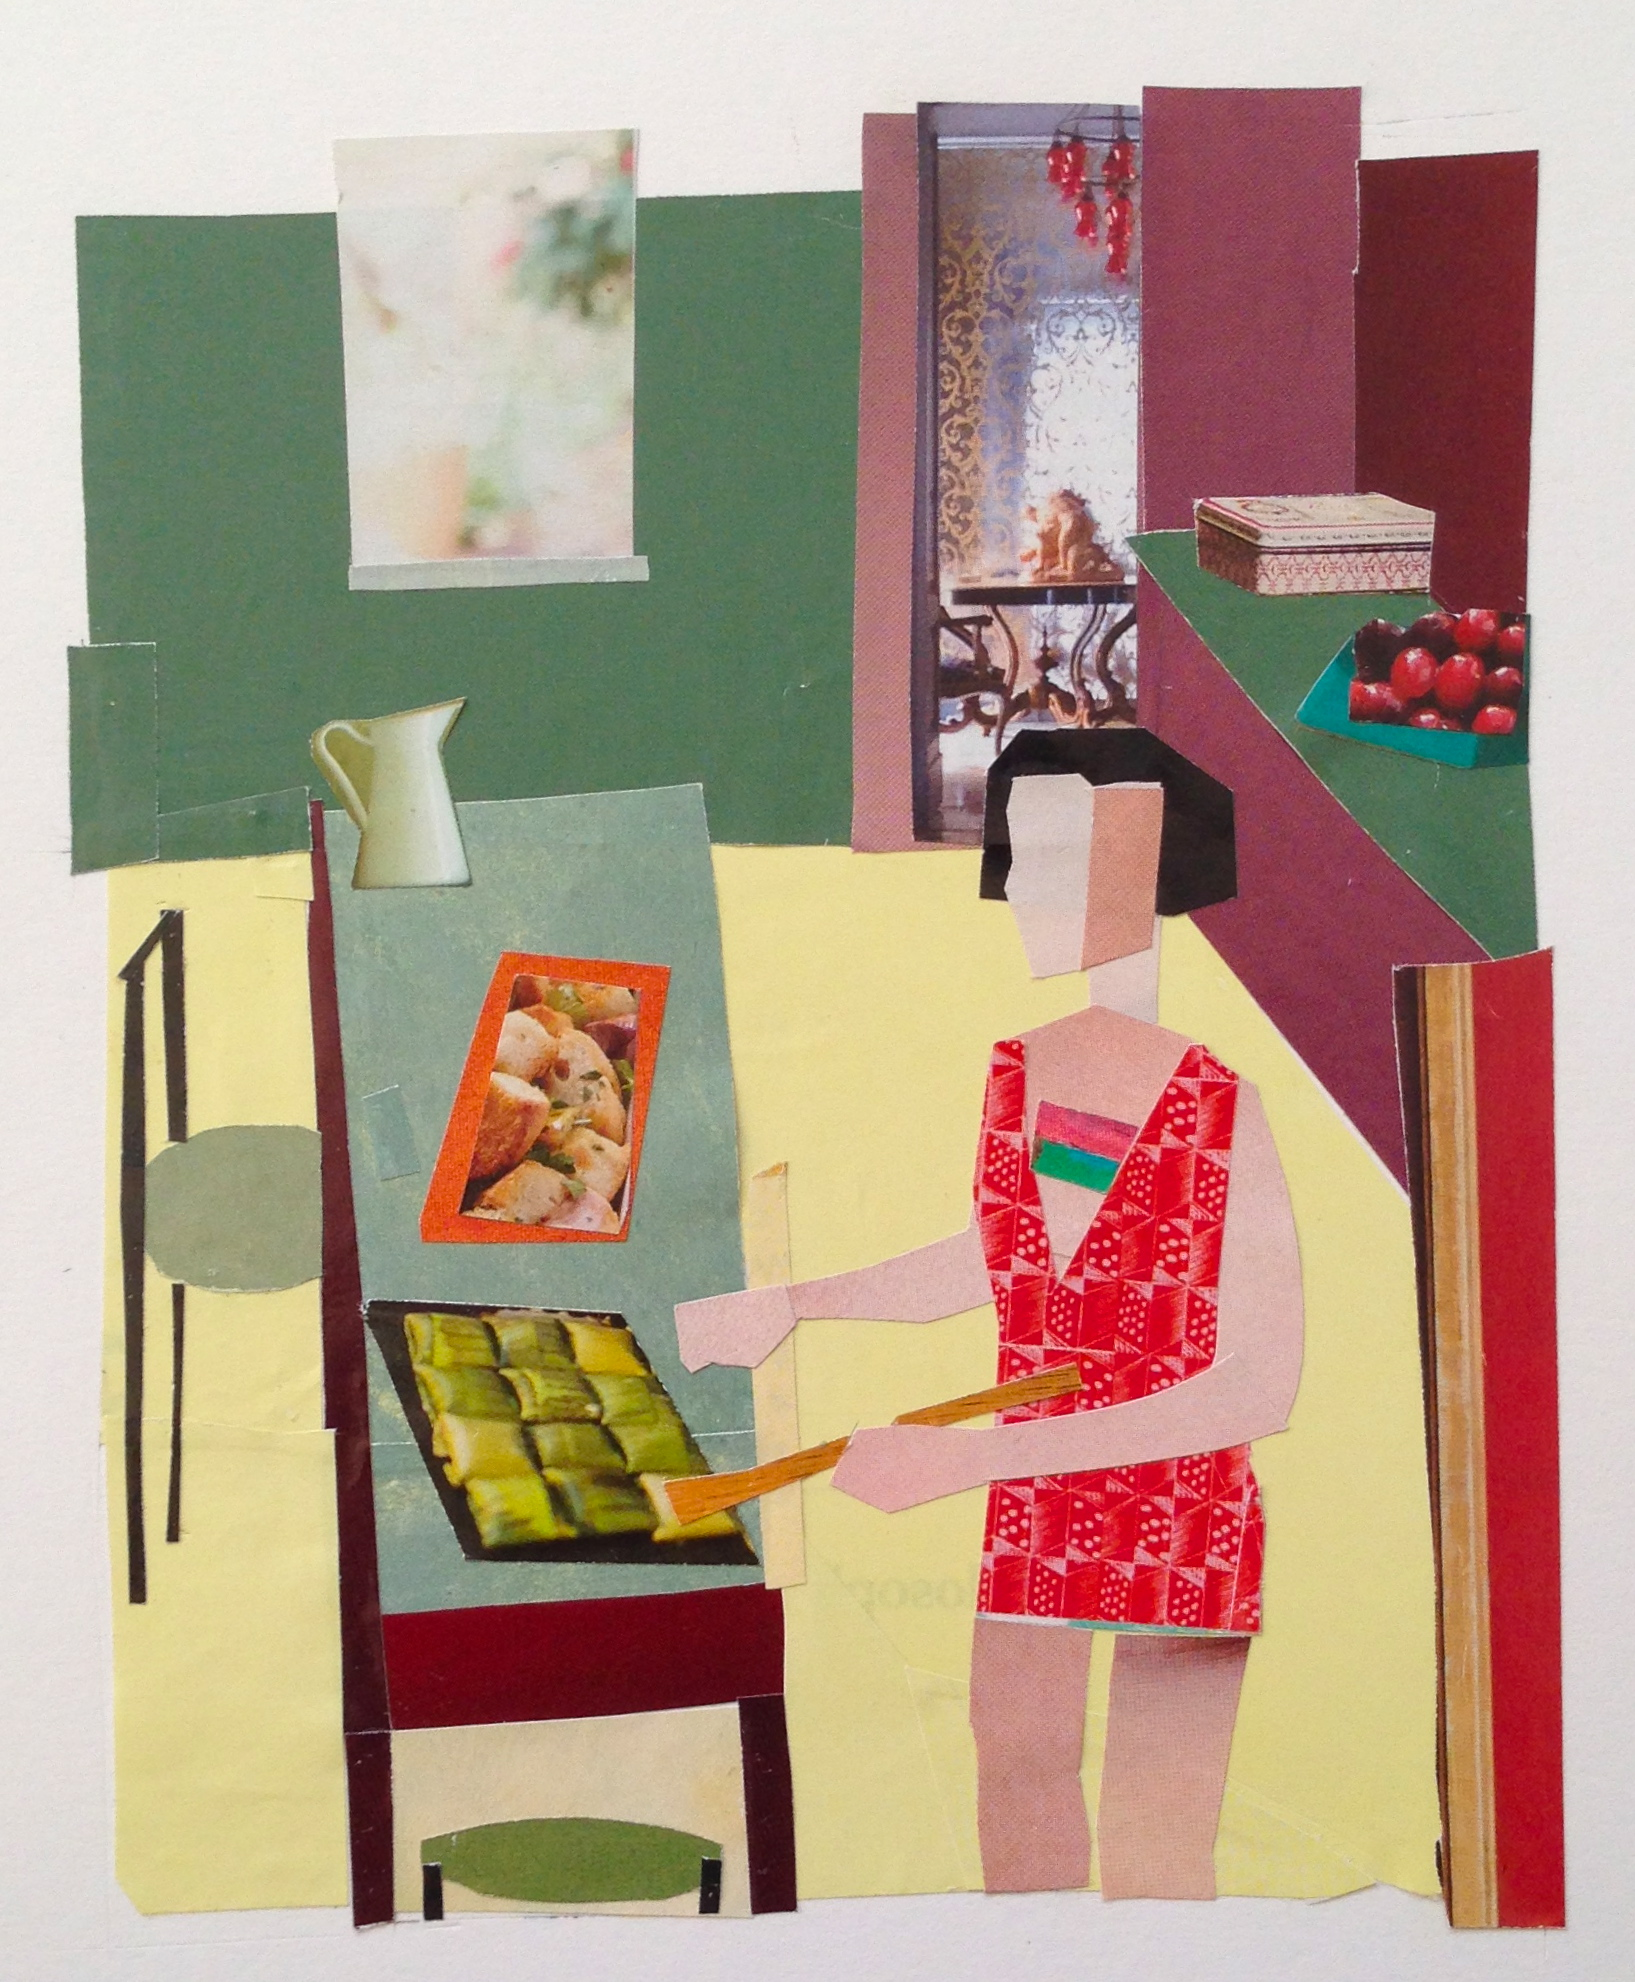 ../../../EXHIBITIONS/2017%20Exhibitions/07_Small%20Works_August%20Morning/01_Images/Putka_Sophie%20in%20the%20Kitchen.jpg